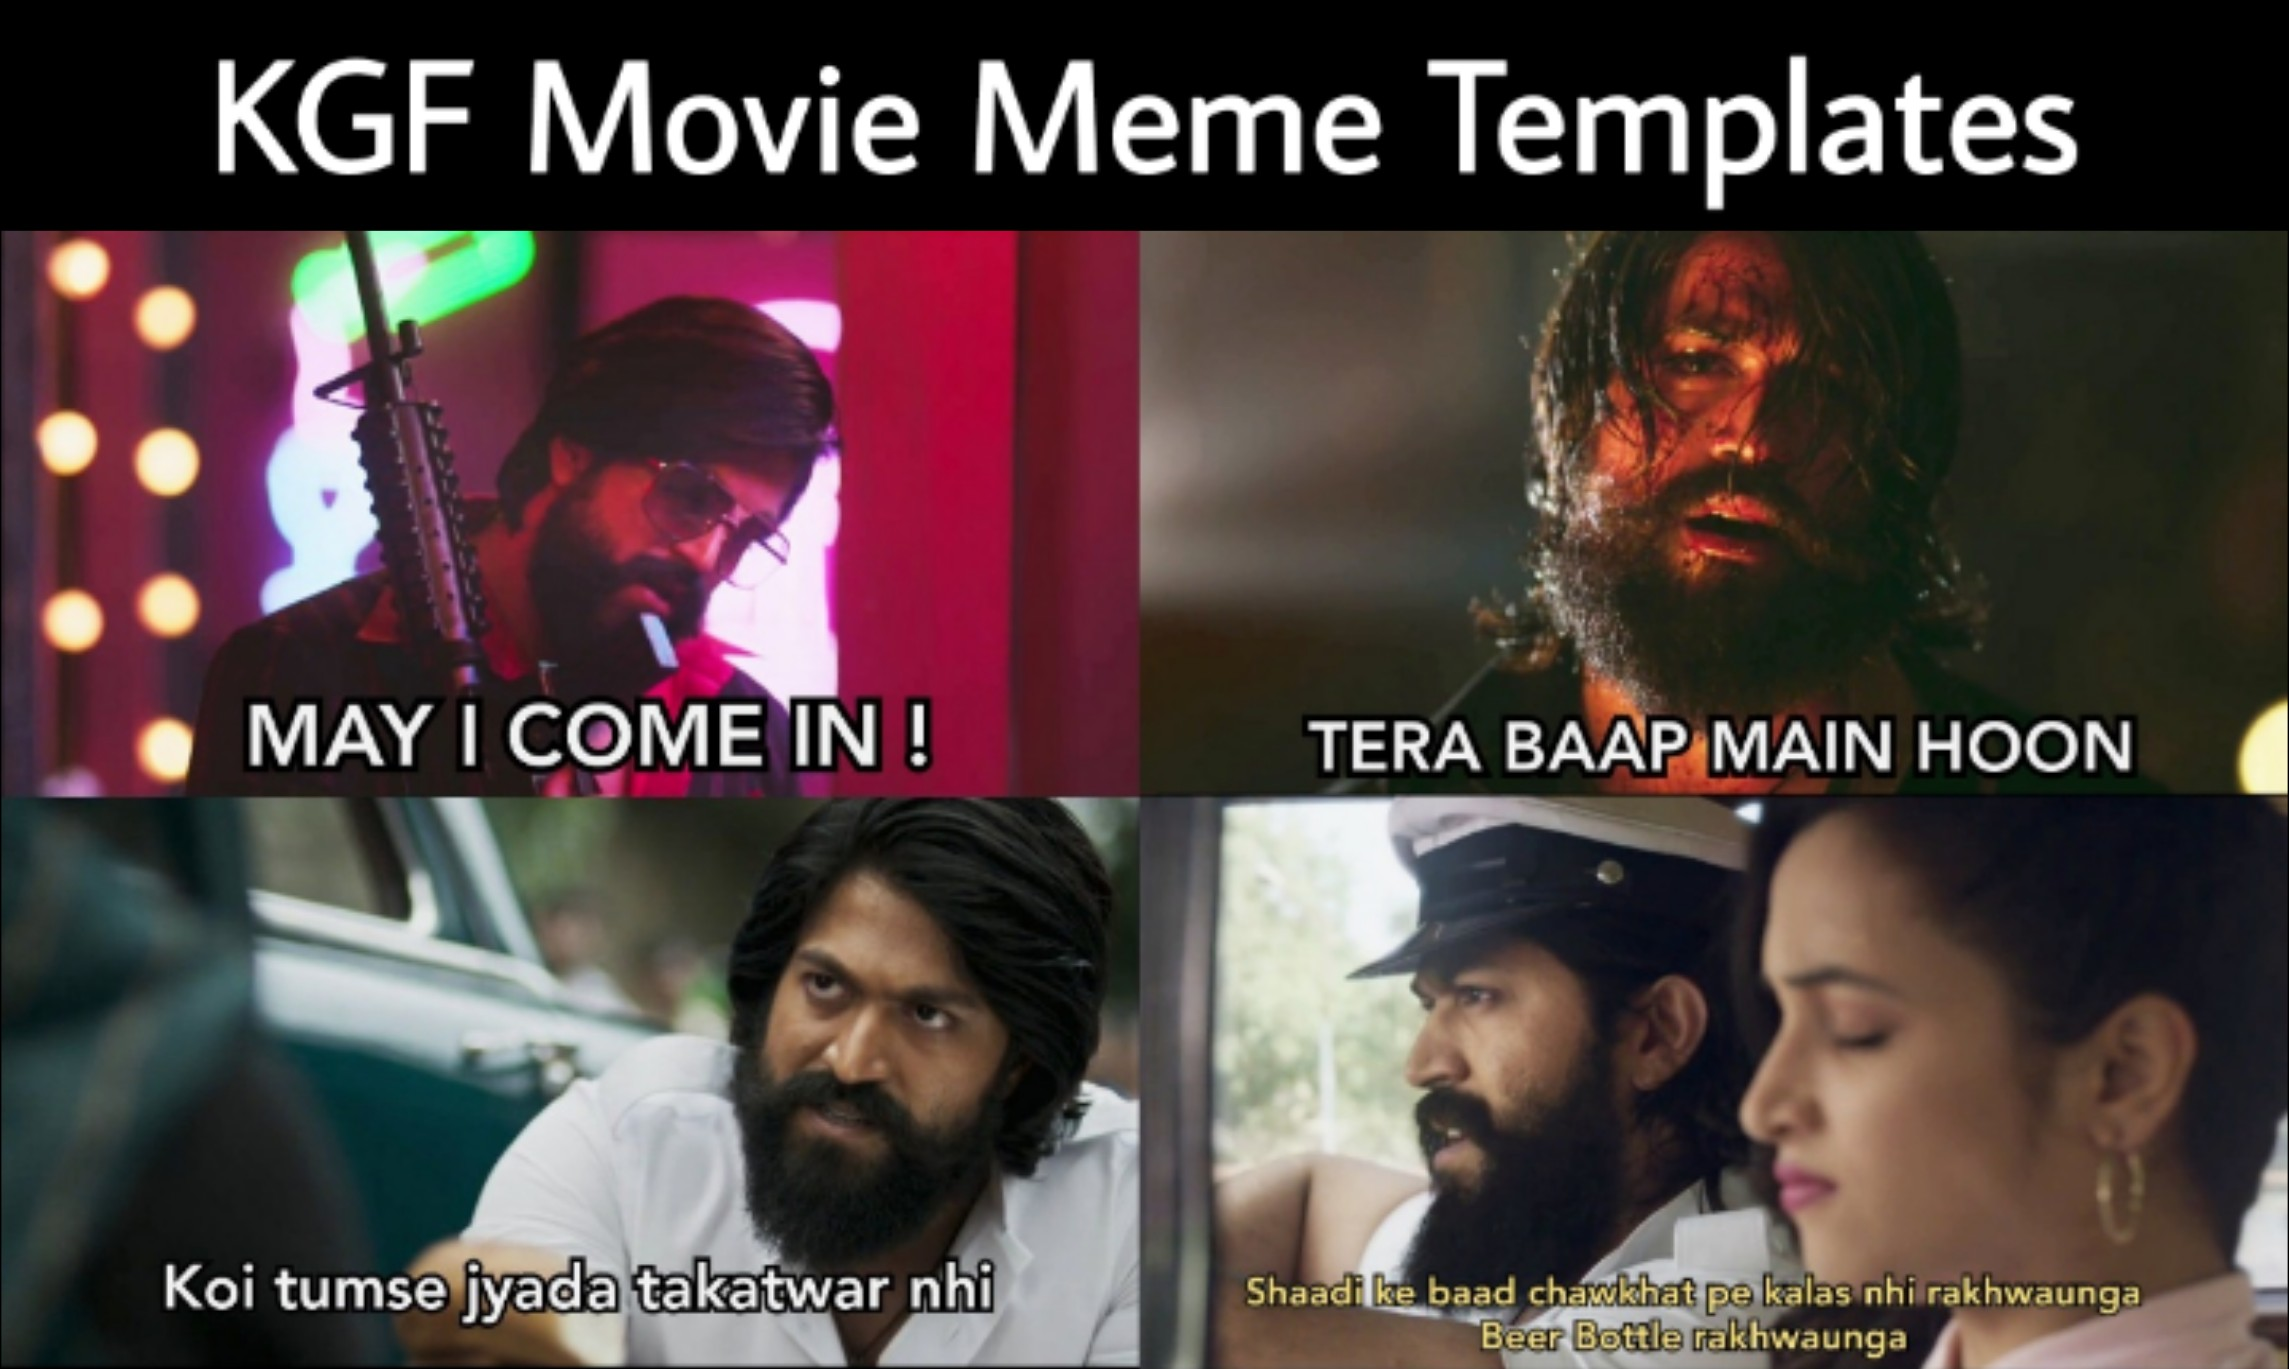 KGF Movie Meme Templates